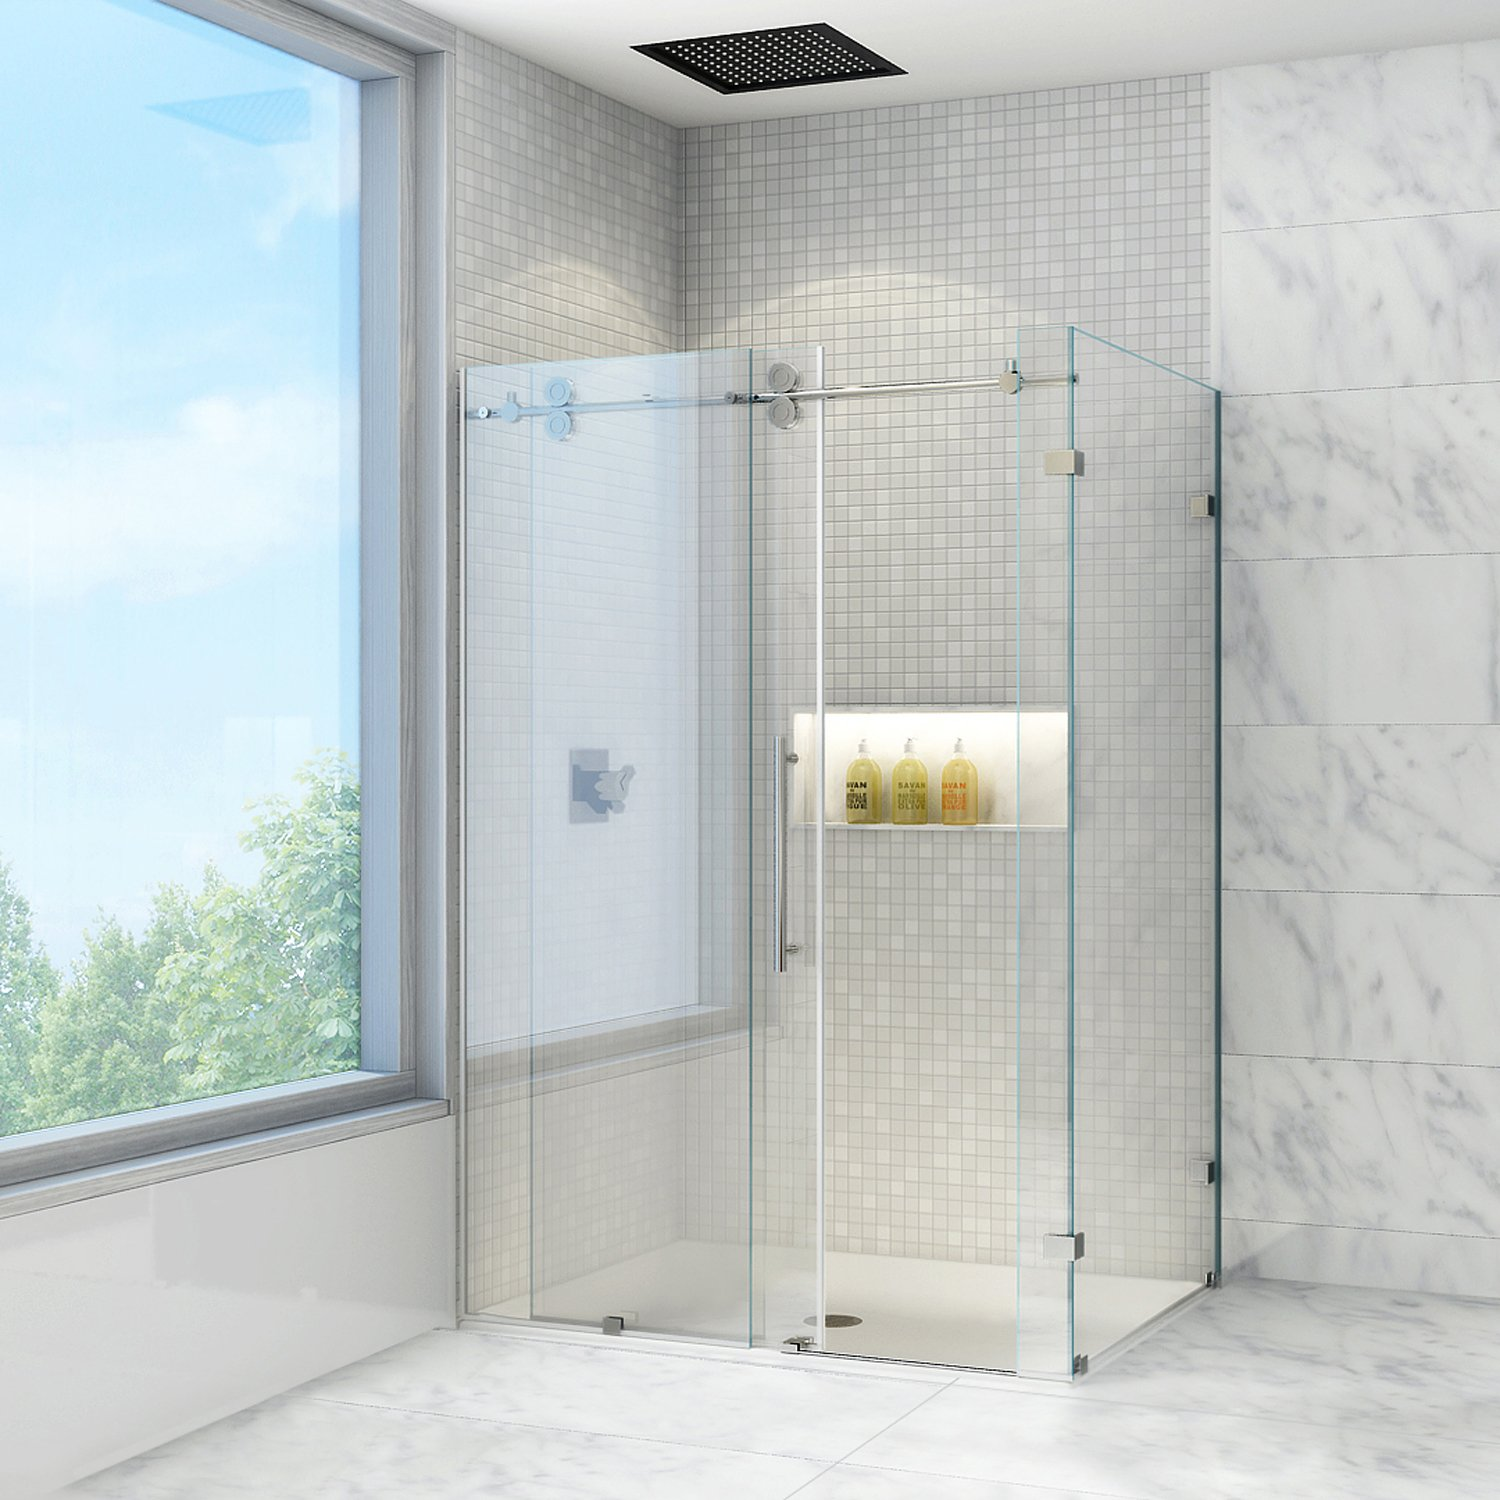 VIGO Winslow 36 X 48 In. Frameless Sliding Shower Enclosure With .375 In.  Clear Glass And Chrome Hardware   Shower Doors   Amazon.com